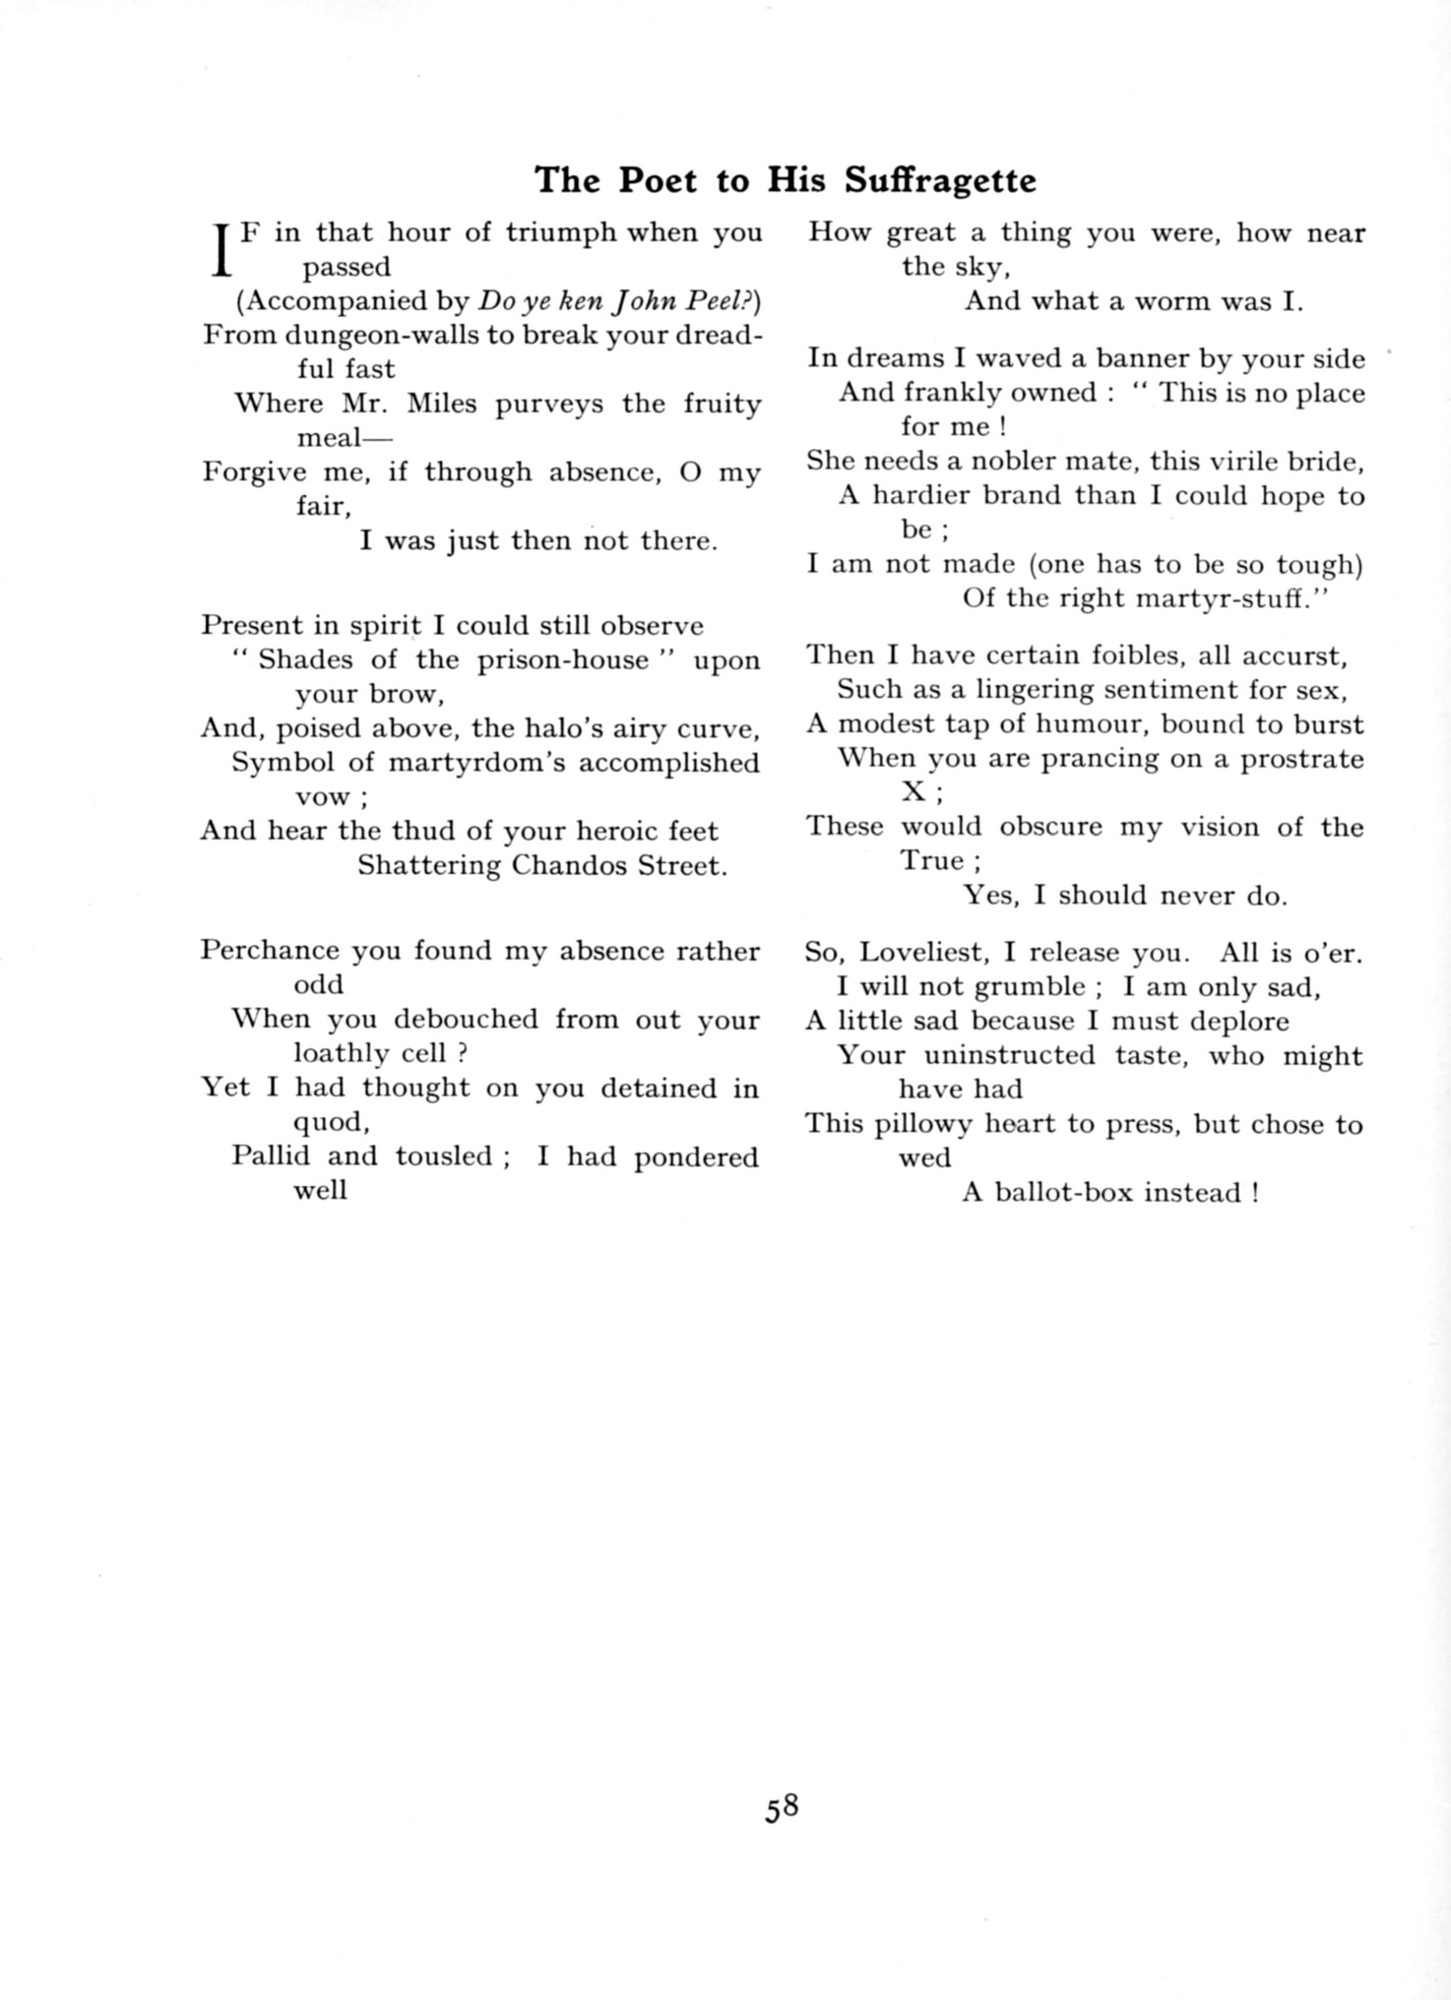 1915 Punch Cavalcade p58 - Poet to Suffragettte